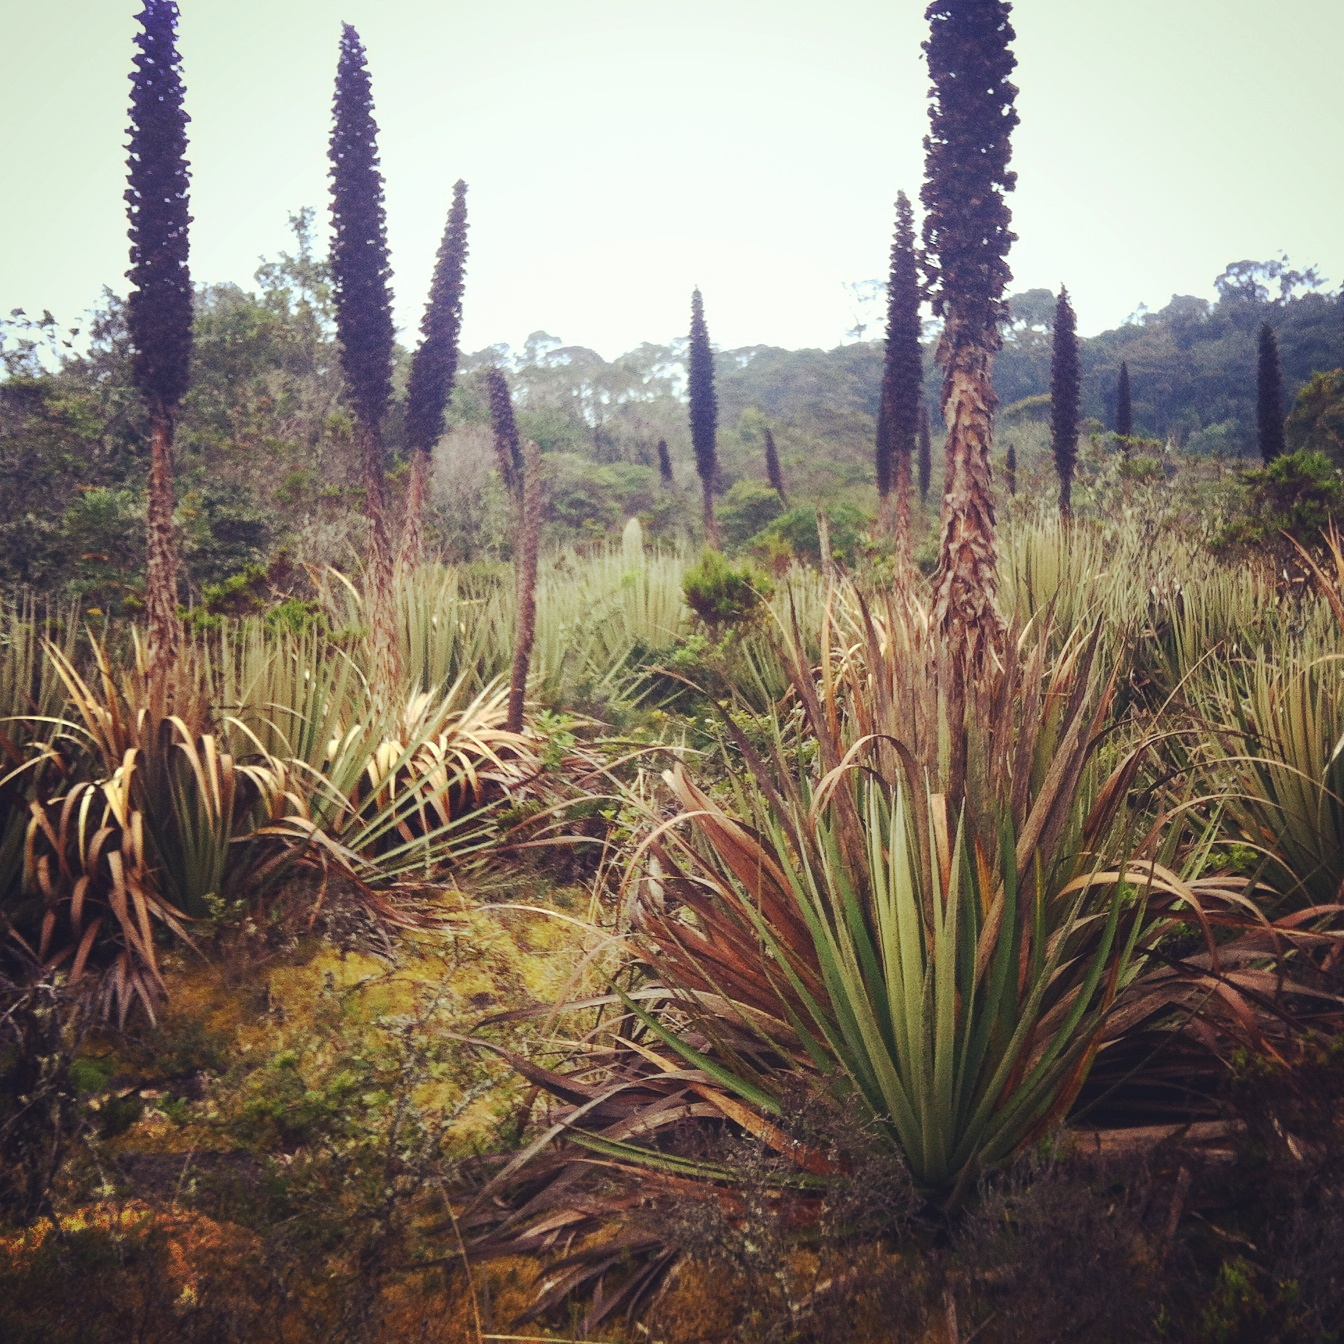 Agave-like puja plants dominate the landscape above tree line at Bosque Guajira, Colombia. Noah Strycker